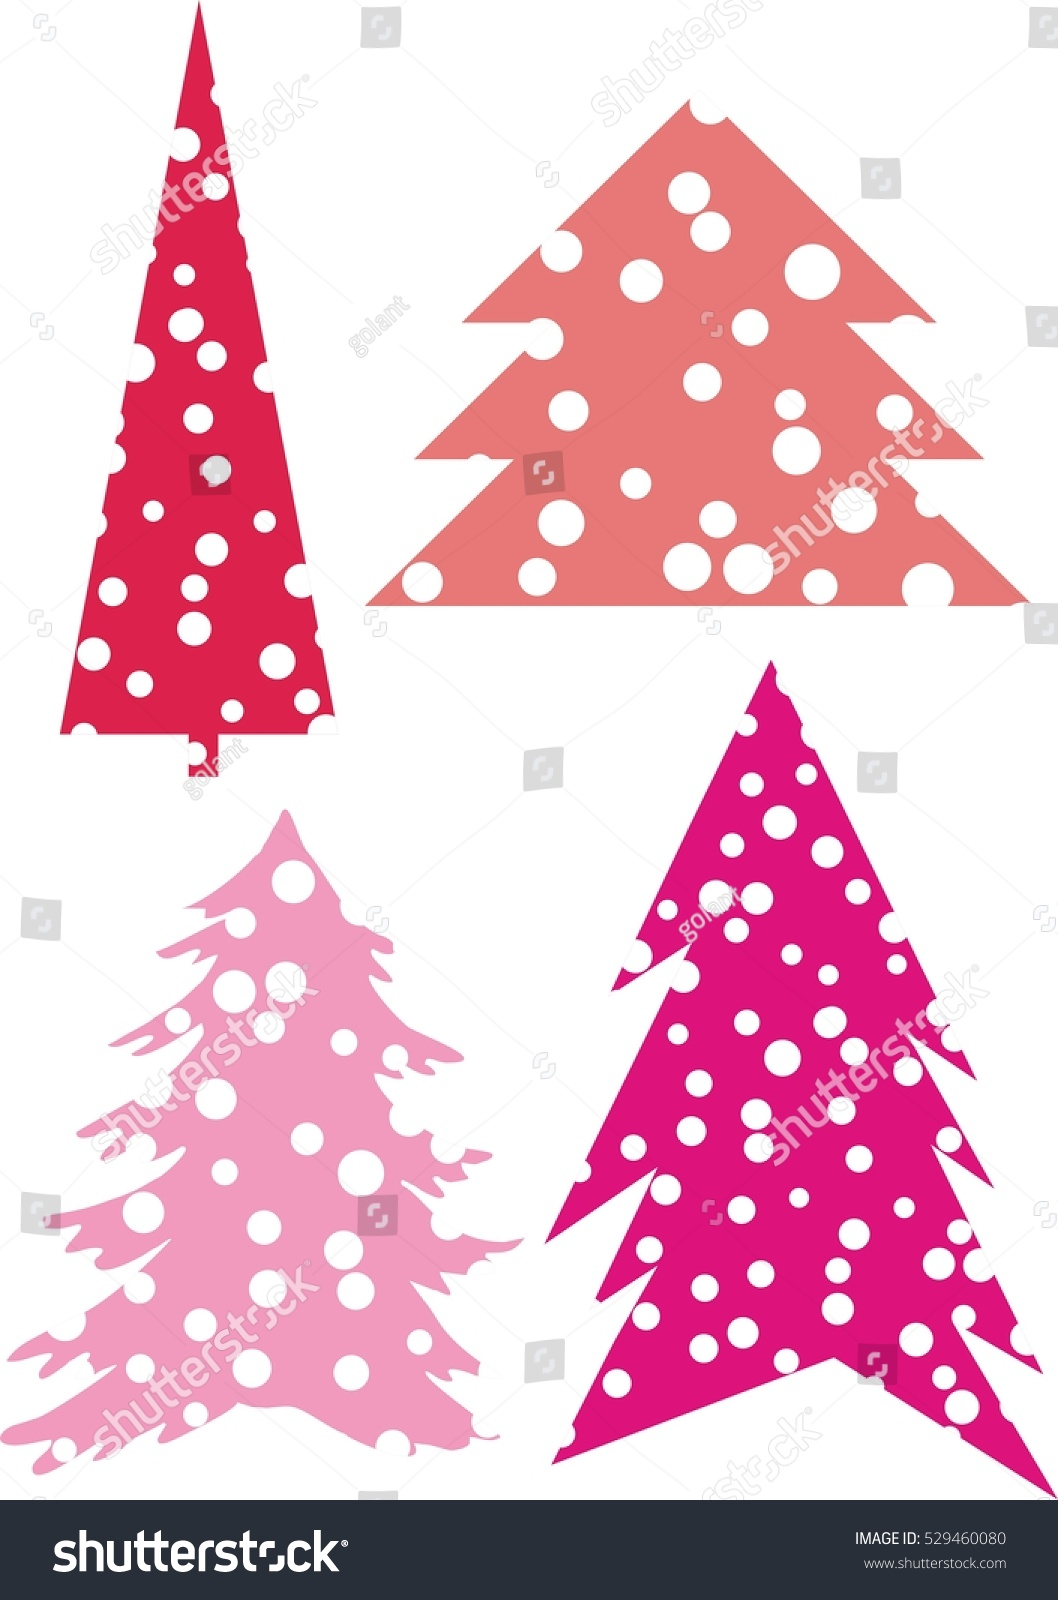 Christmas trees decorated pink - Set Of Abstract Christmas Trees With Decoration Pink Color Vector Abstract Tree Points As In The